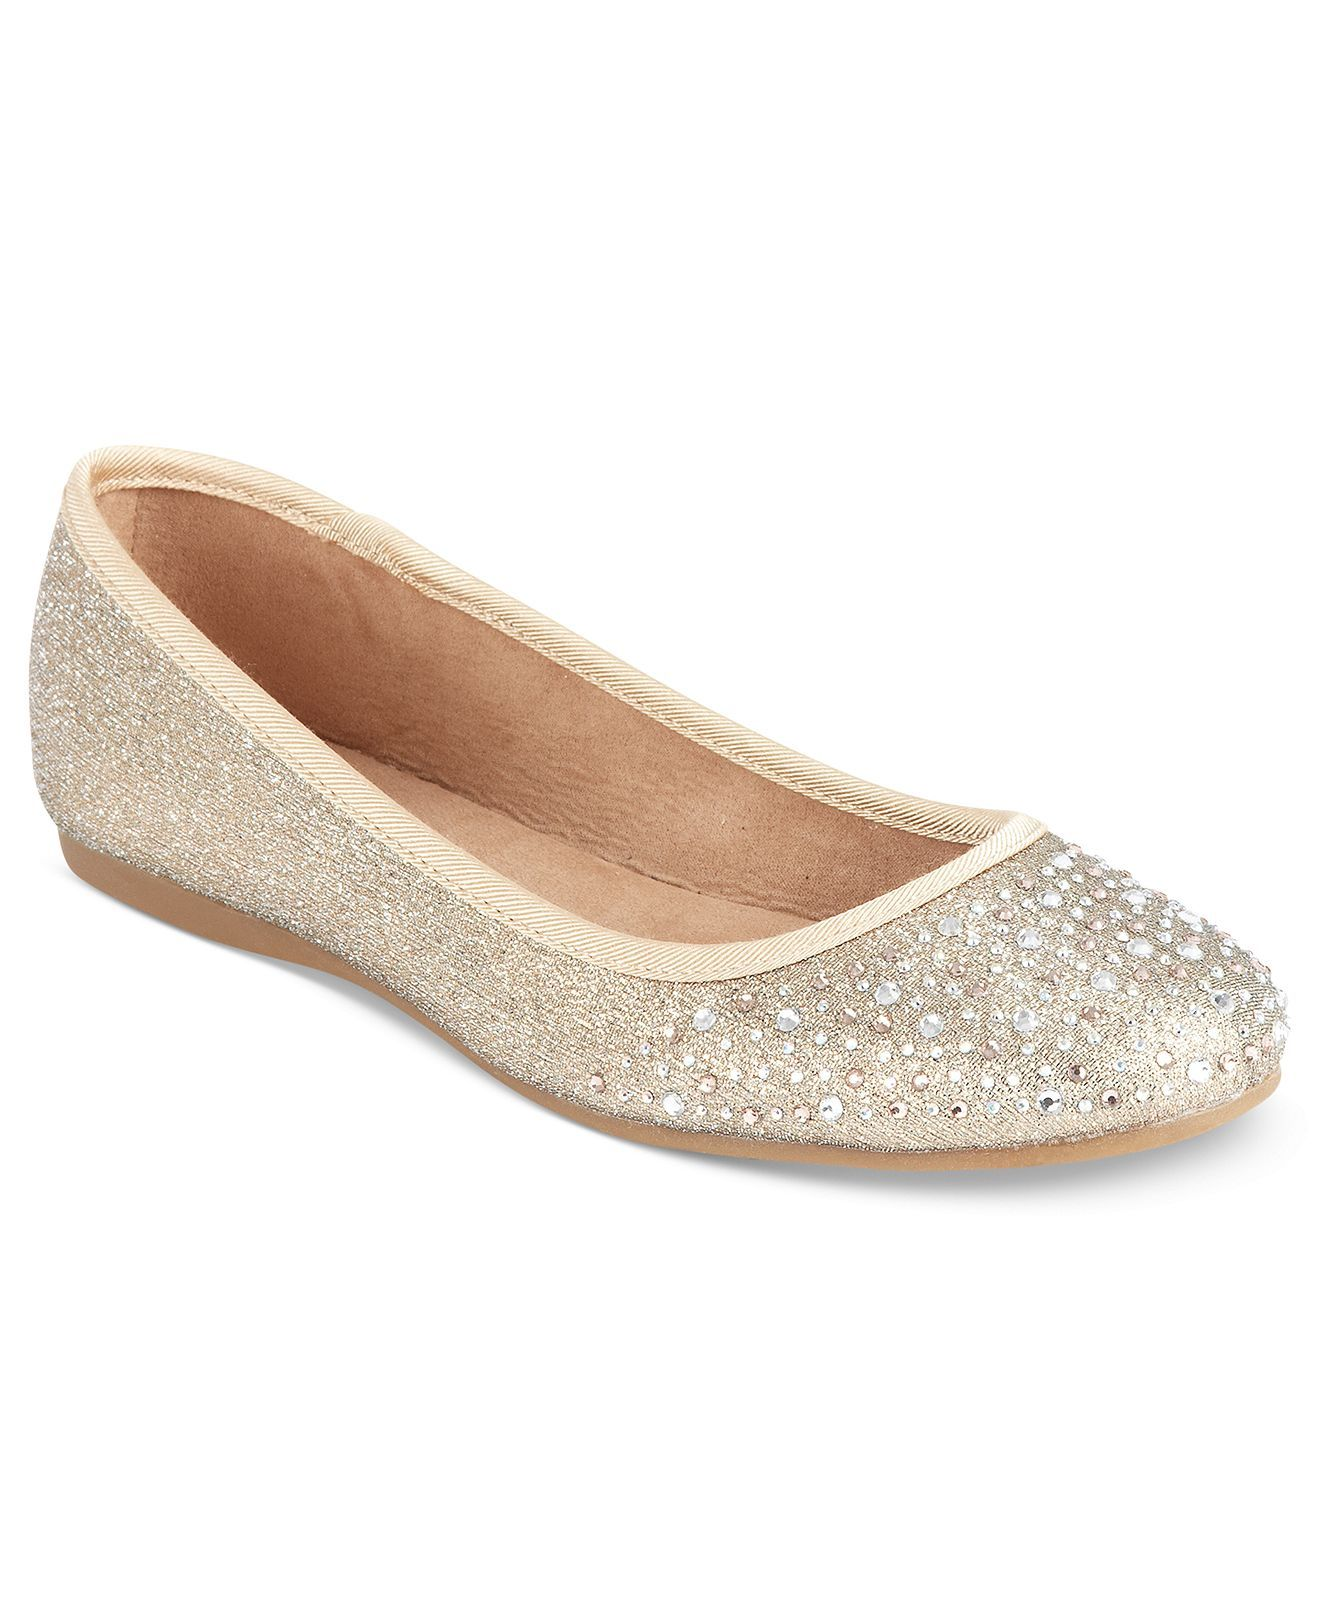 1d6aa2808b3dc Angelynn Flats - Gold - Macy s. These are the top contender for shoes so  far. Thanks  Tara Harmon Stauffer for helping me find them!  )